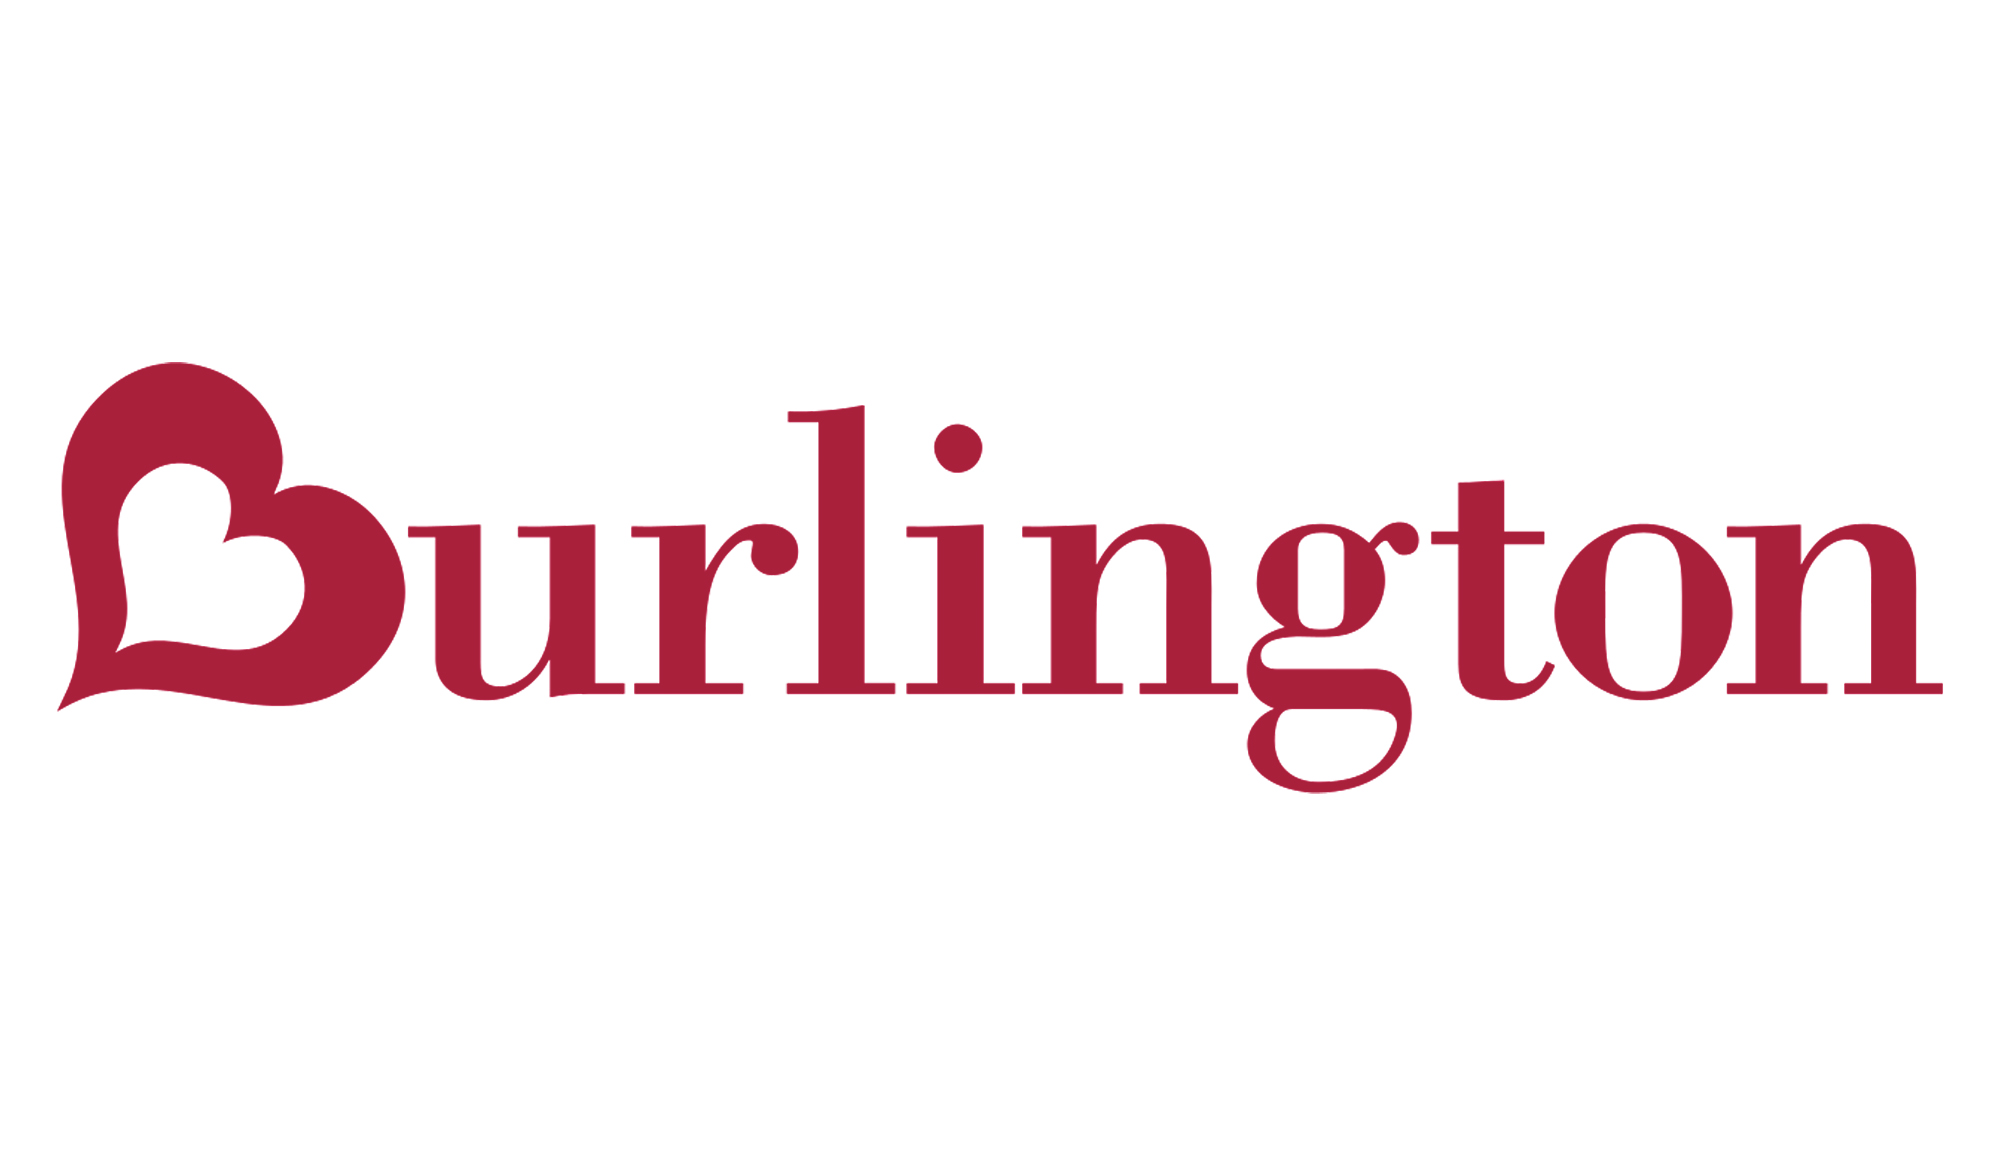 Burlington coat factory logo on a white background.